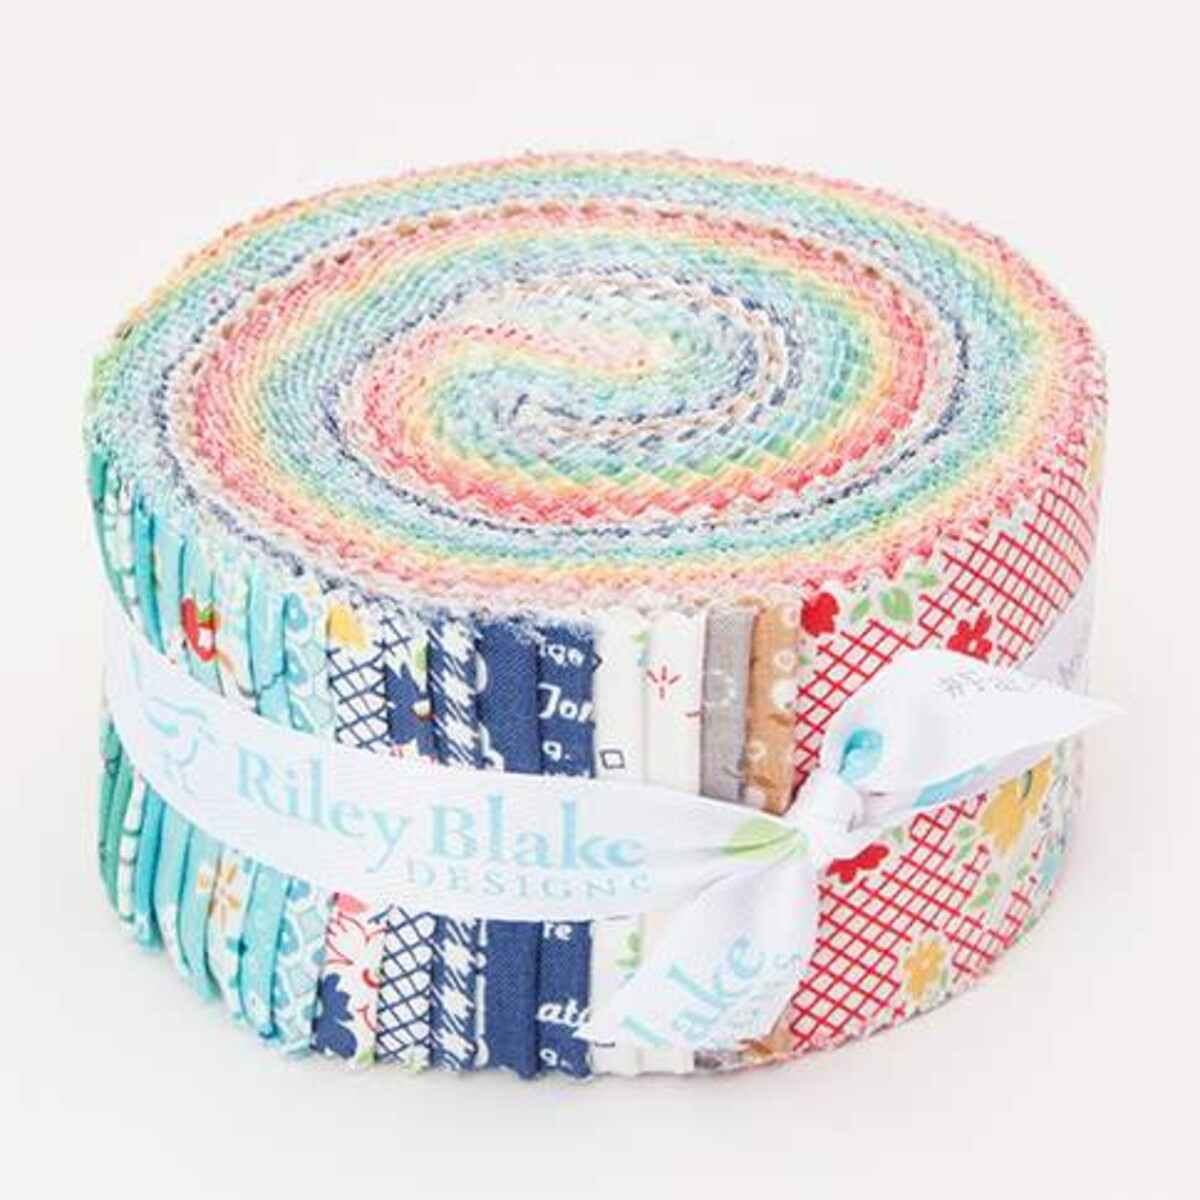 Riley Blake Jelly Roll - Farm Girl Vintage by Lori Holt